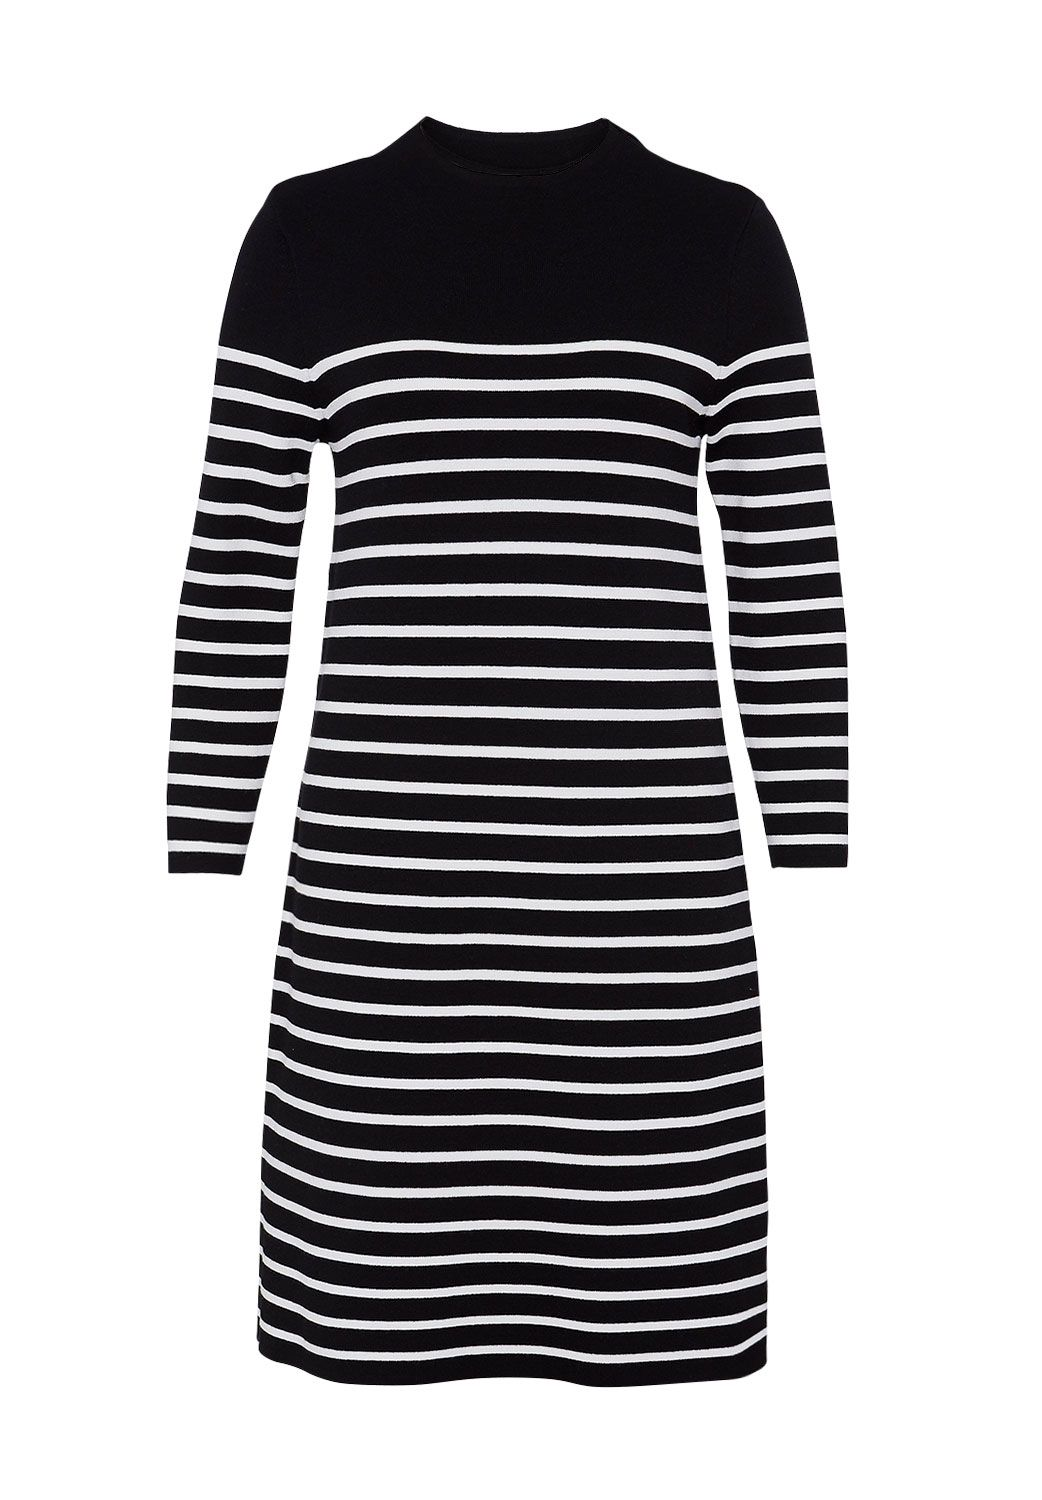 Hallhuber Hallhuber Striped A-line knit dress, Black